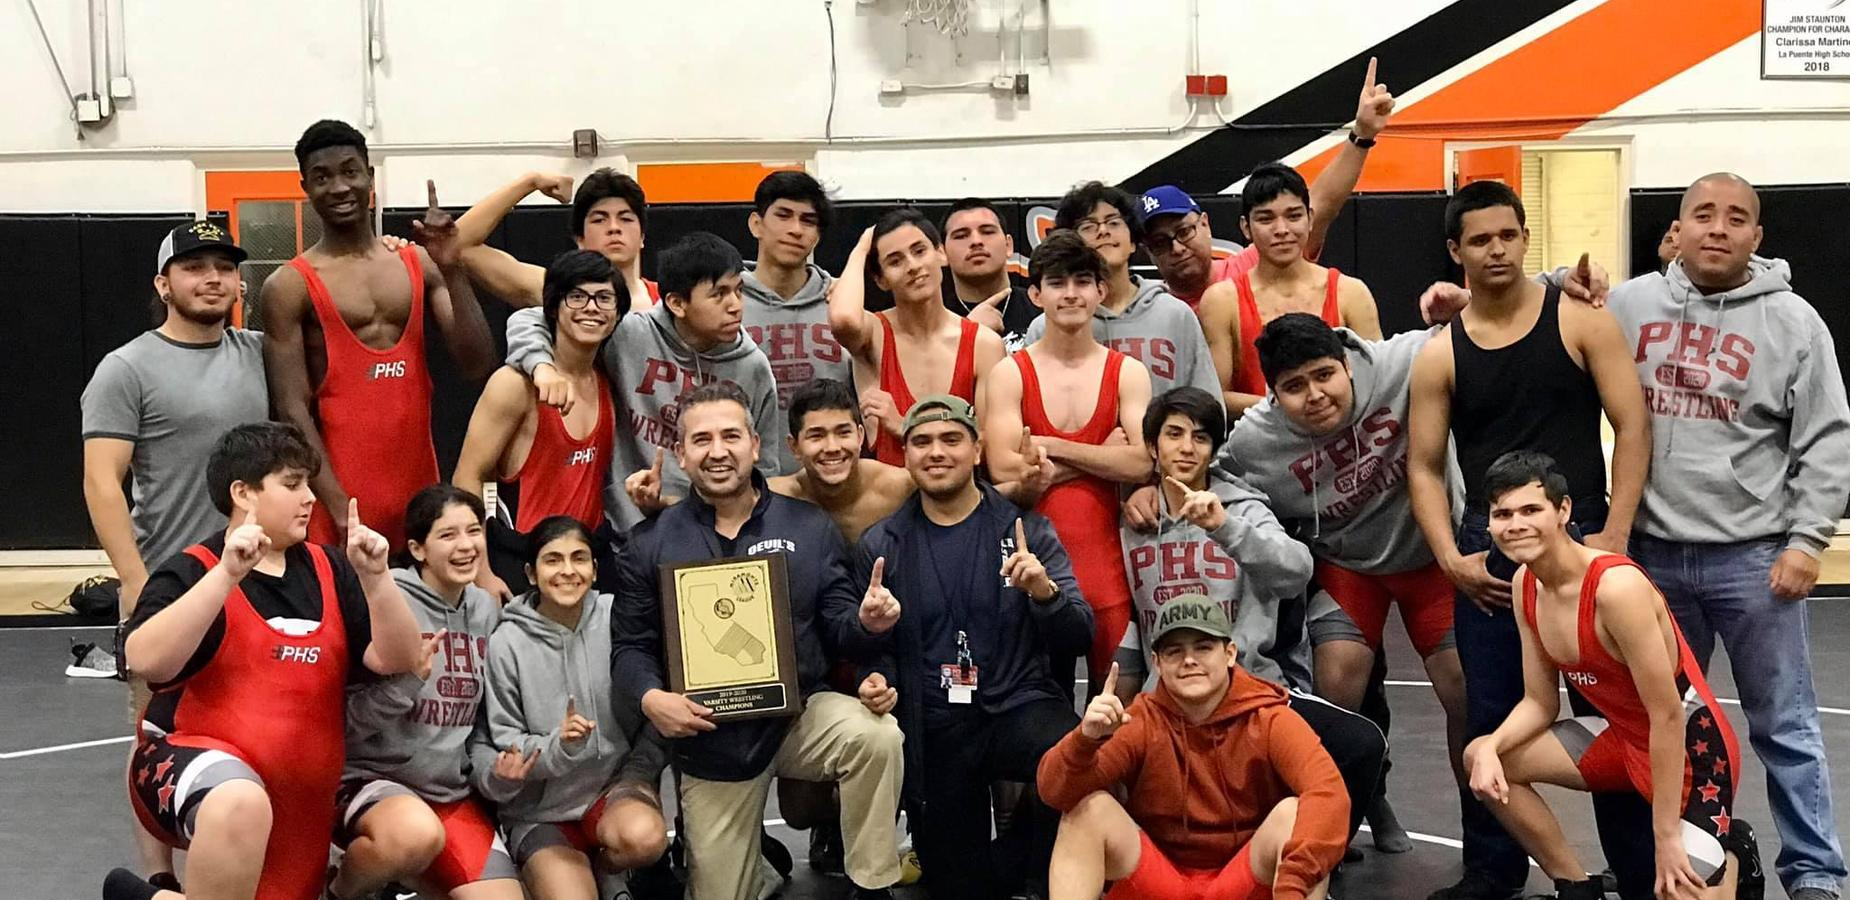 The Pomona High School Wrestling are the 2020 Miramonte League Champions! We are proud of your athletic success, Shout-out to our fearless coach and staff! #proud2bepusd #wrestling #pro #bigtime #GOAT